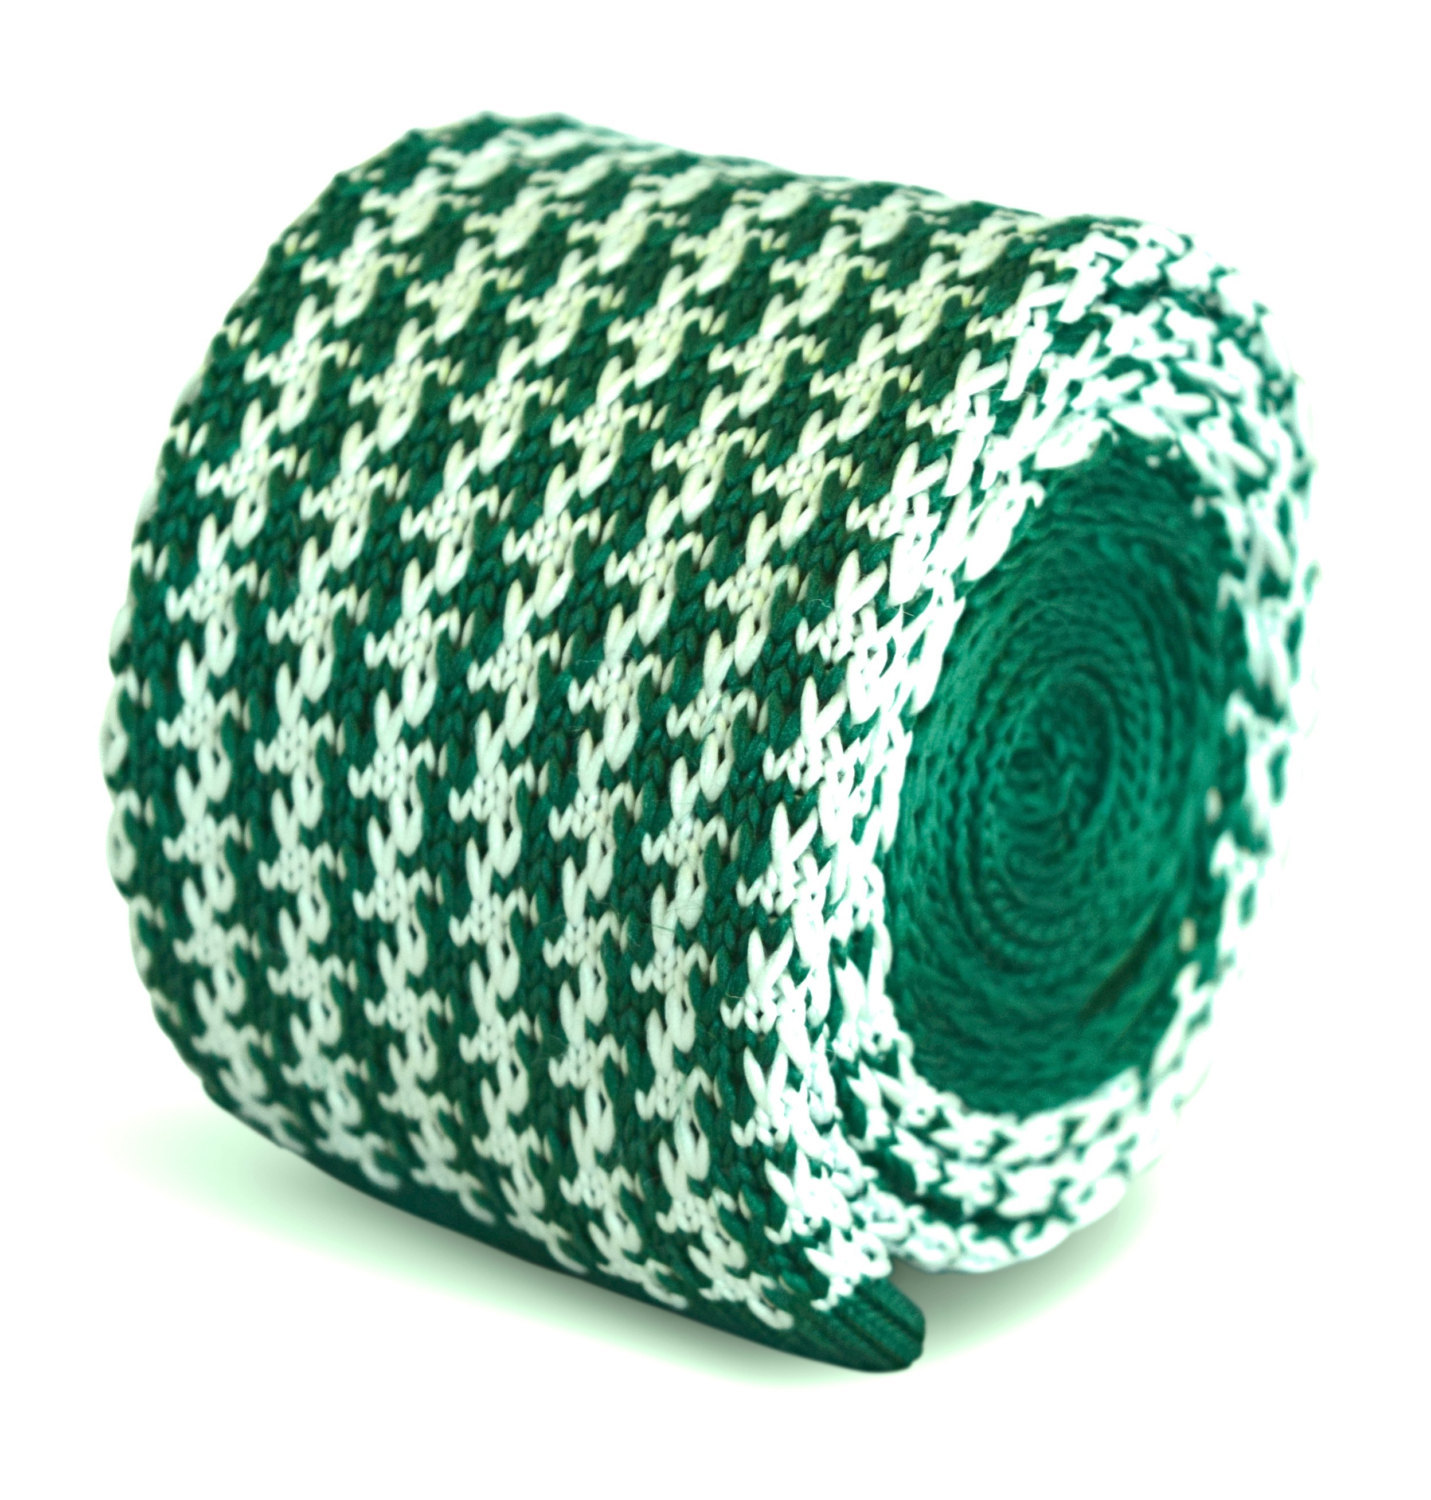 green and white dogstooth knitted skinny tie by Frederick Thomas FT3282